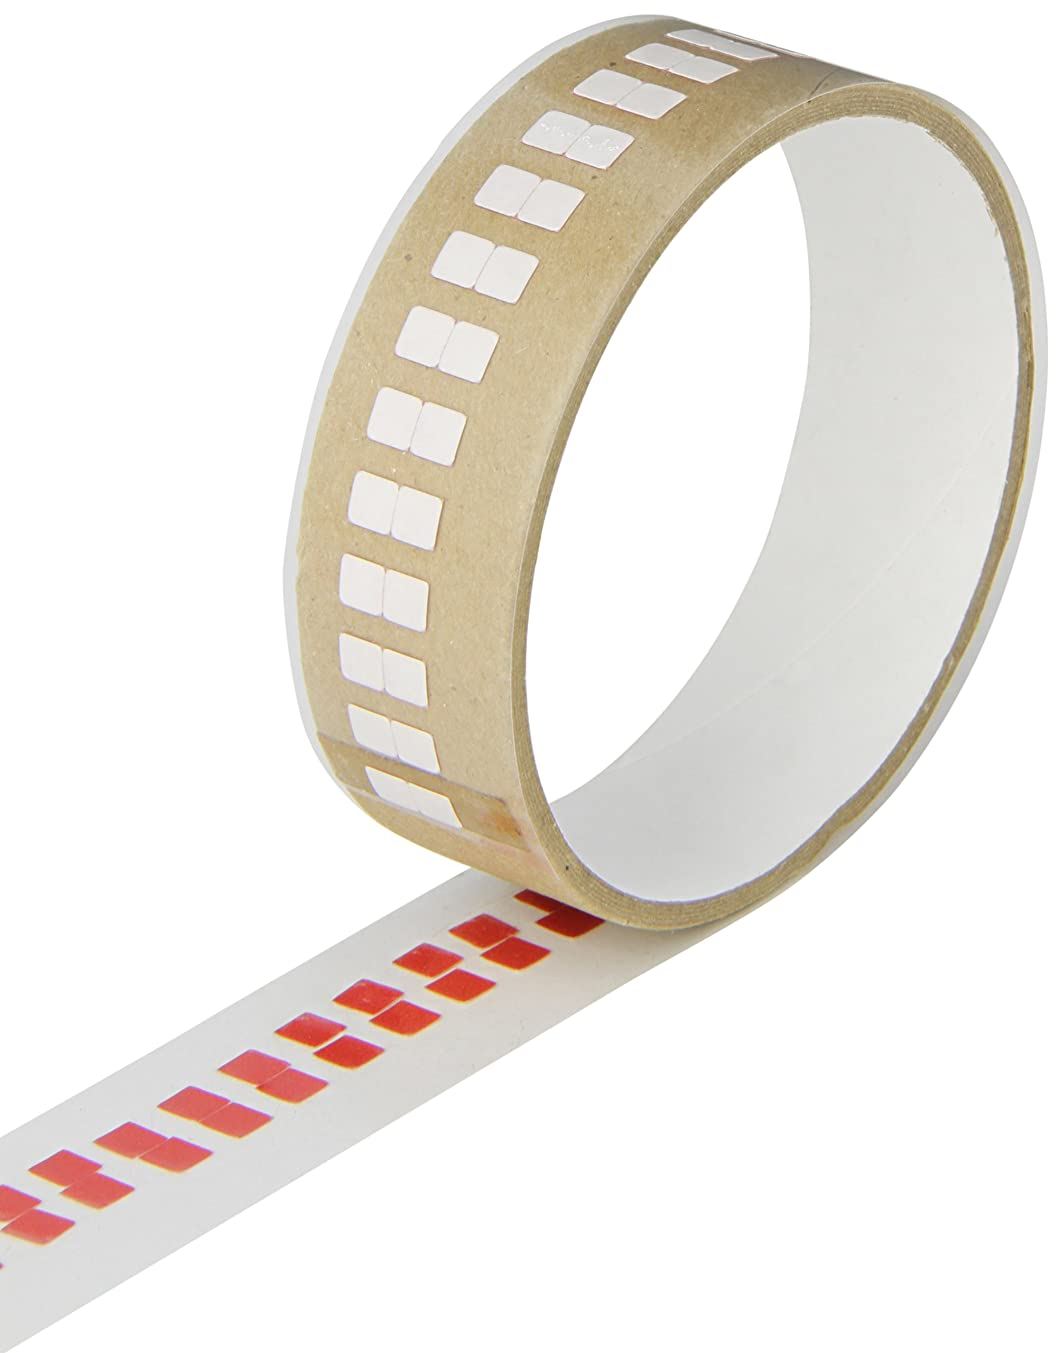 3M 5558 Contact Indicator Tape, 0.197 Squares (1 Pack)